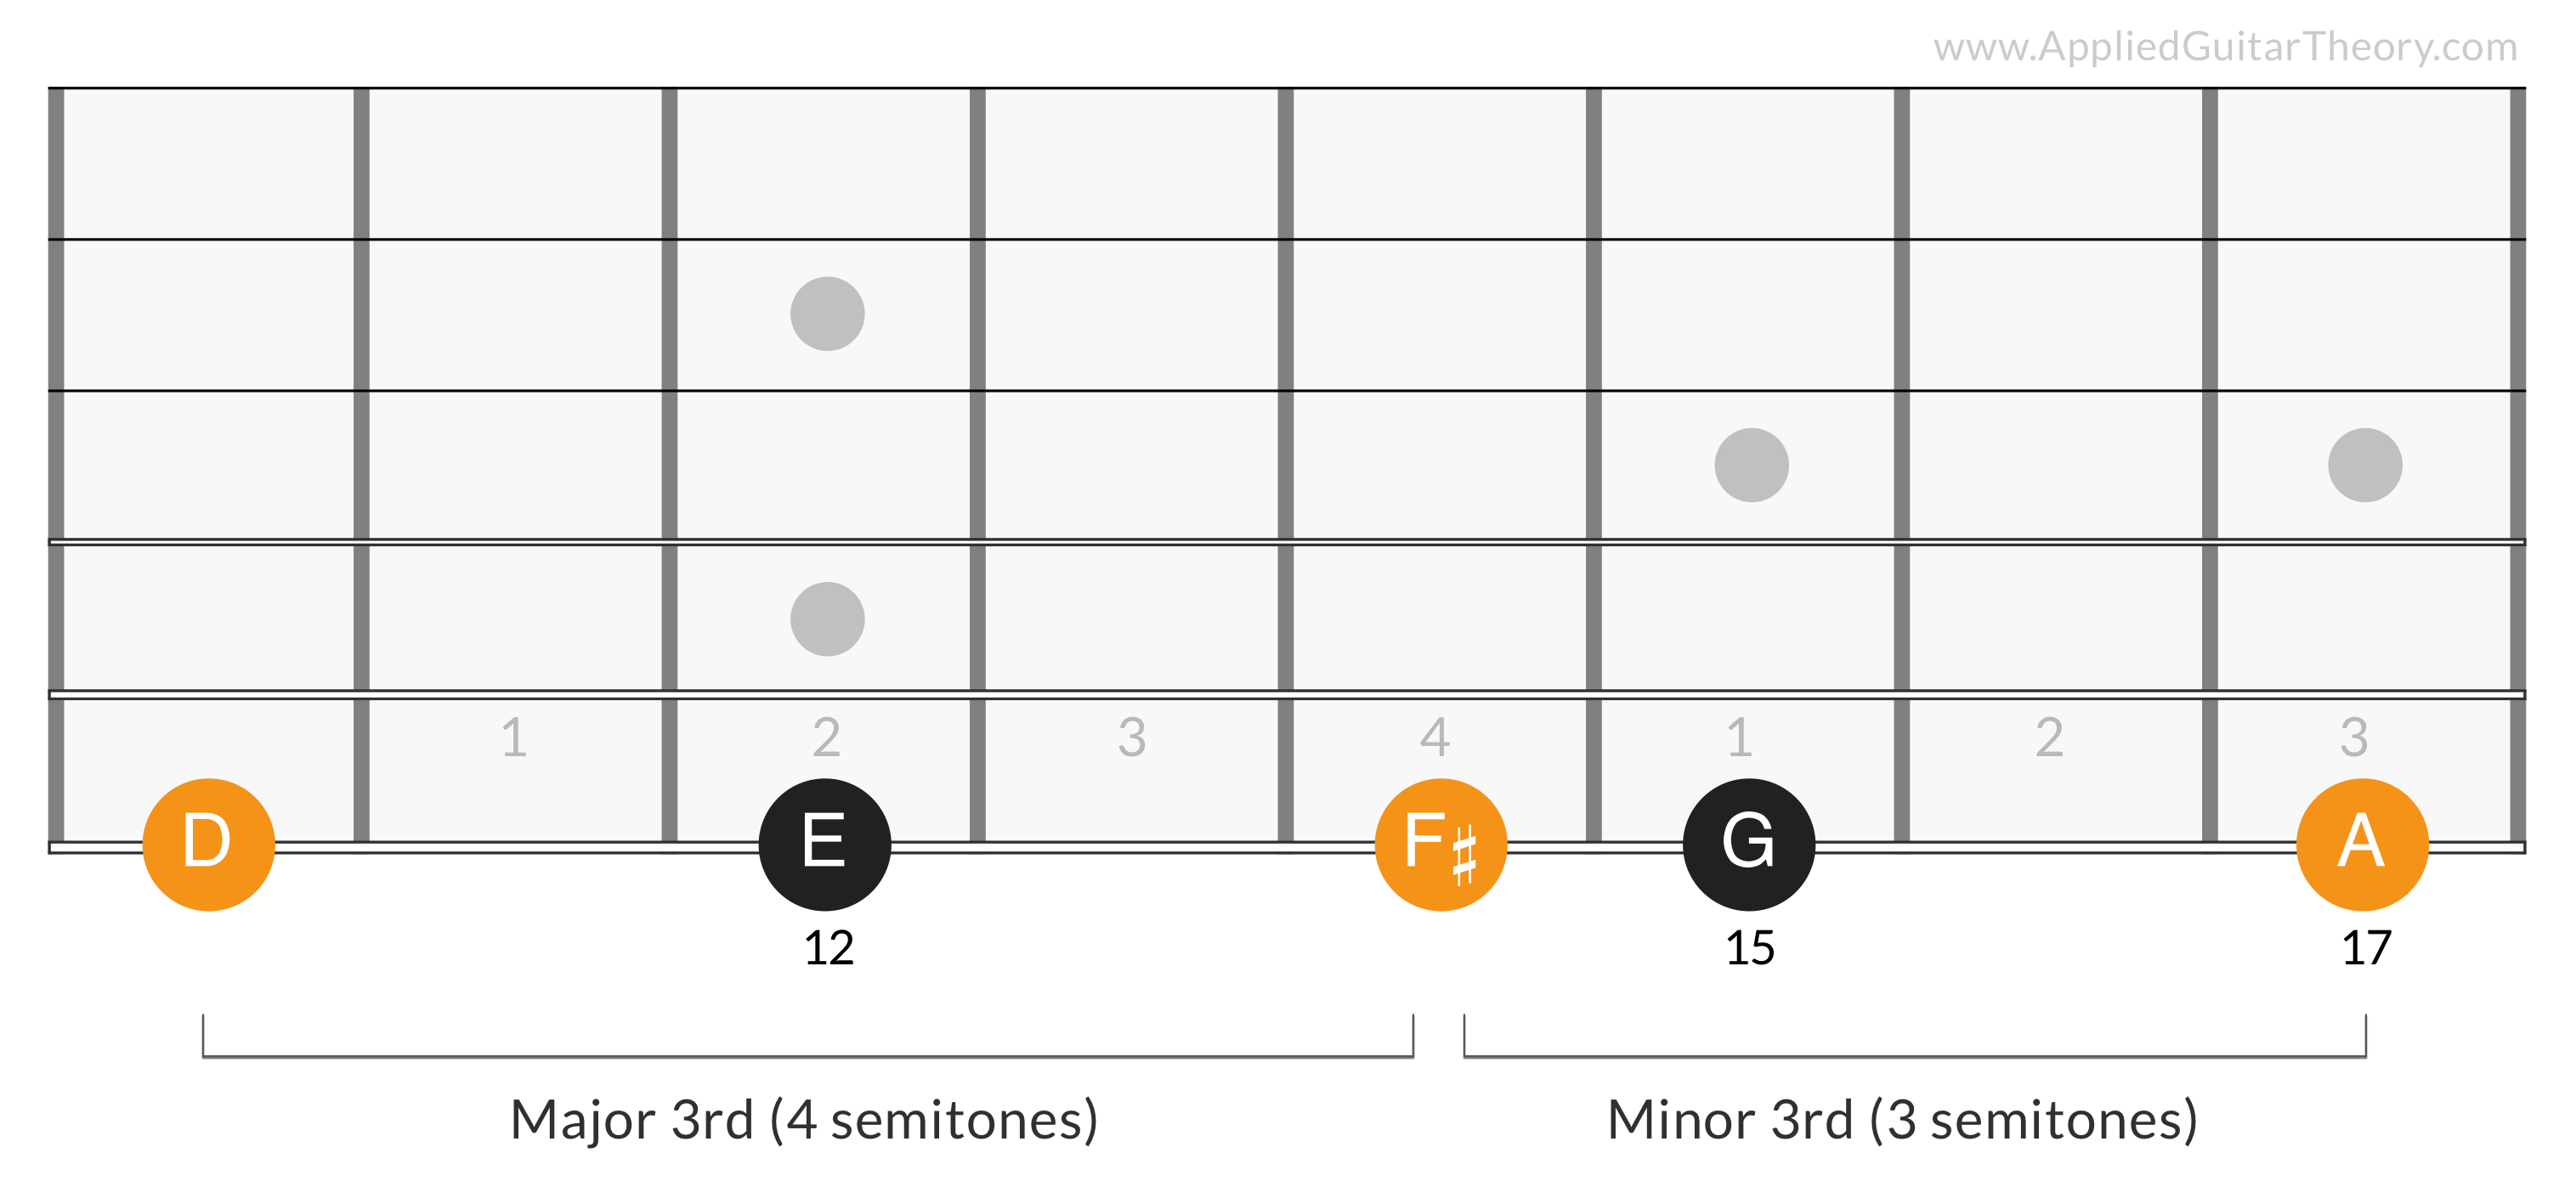 G Major Triad 5th Degree - D F# A